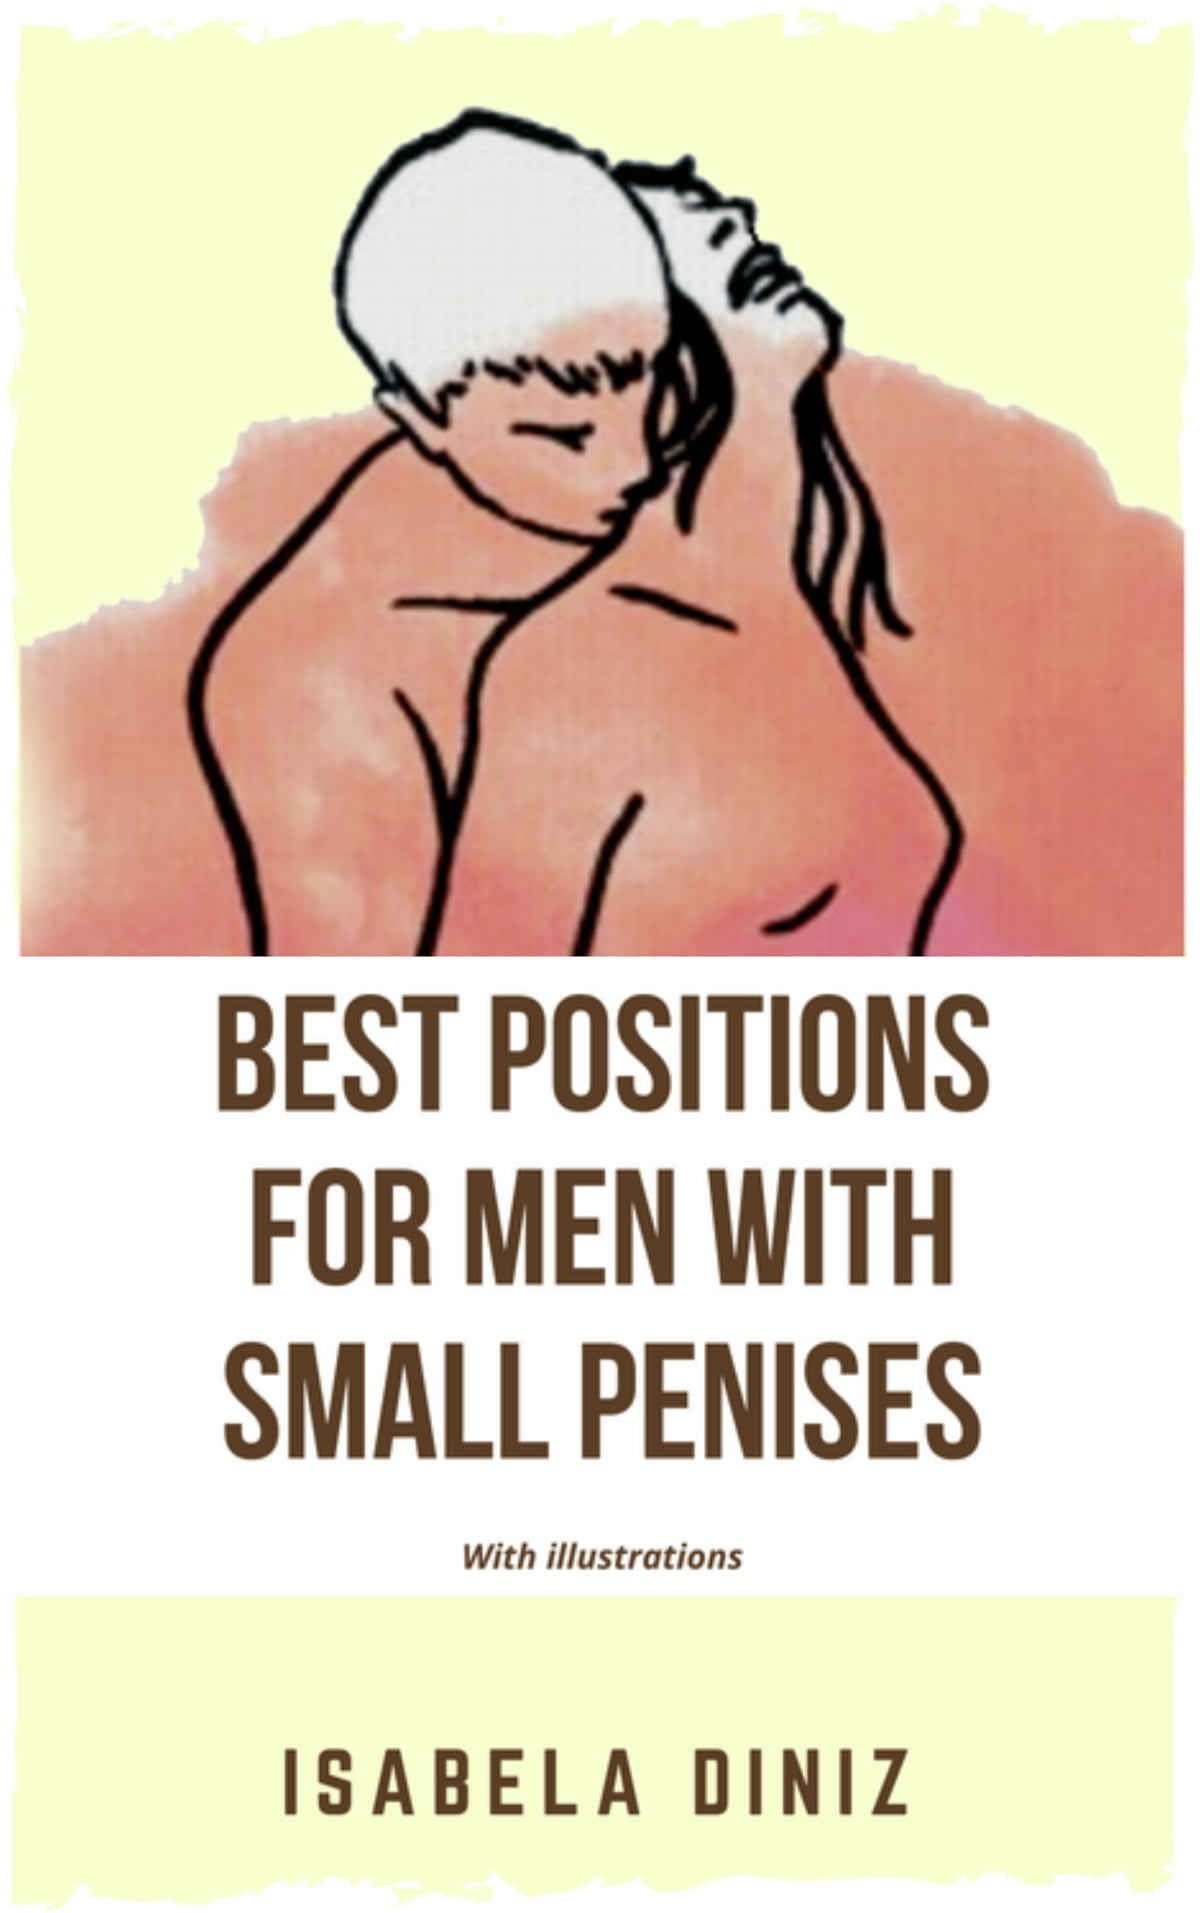 Men with short penises